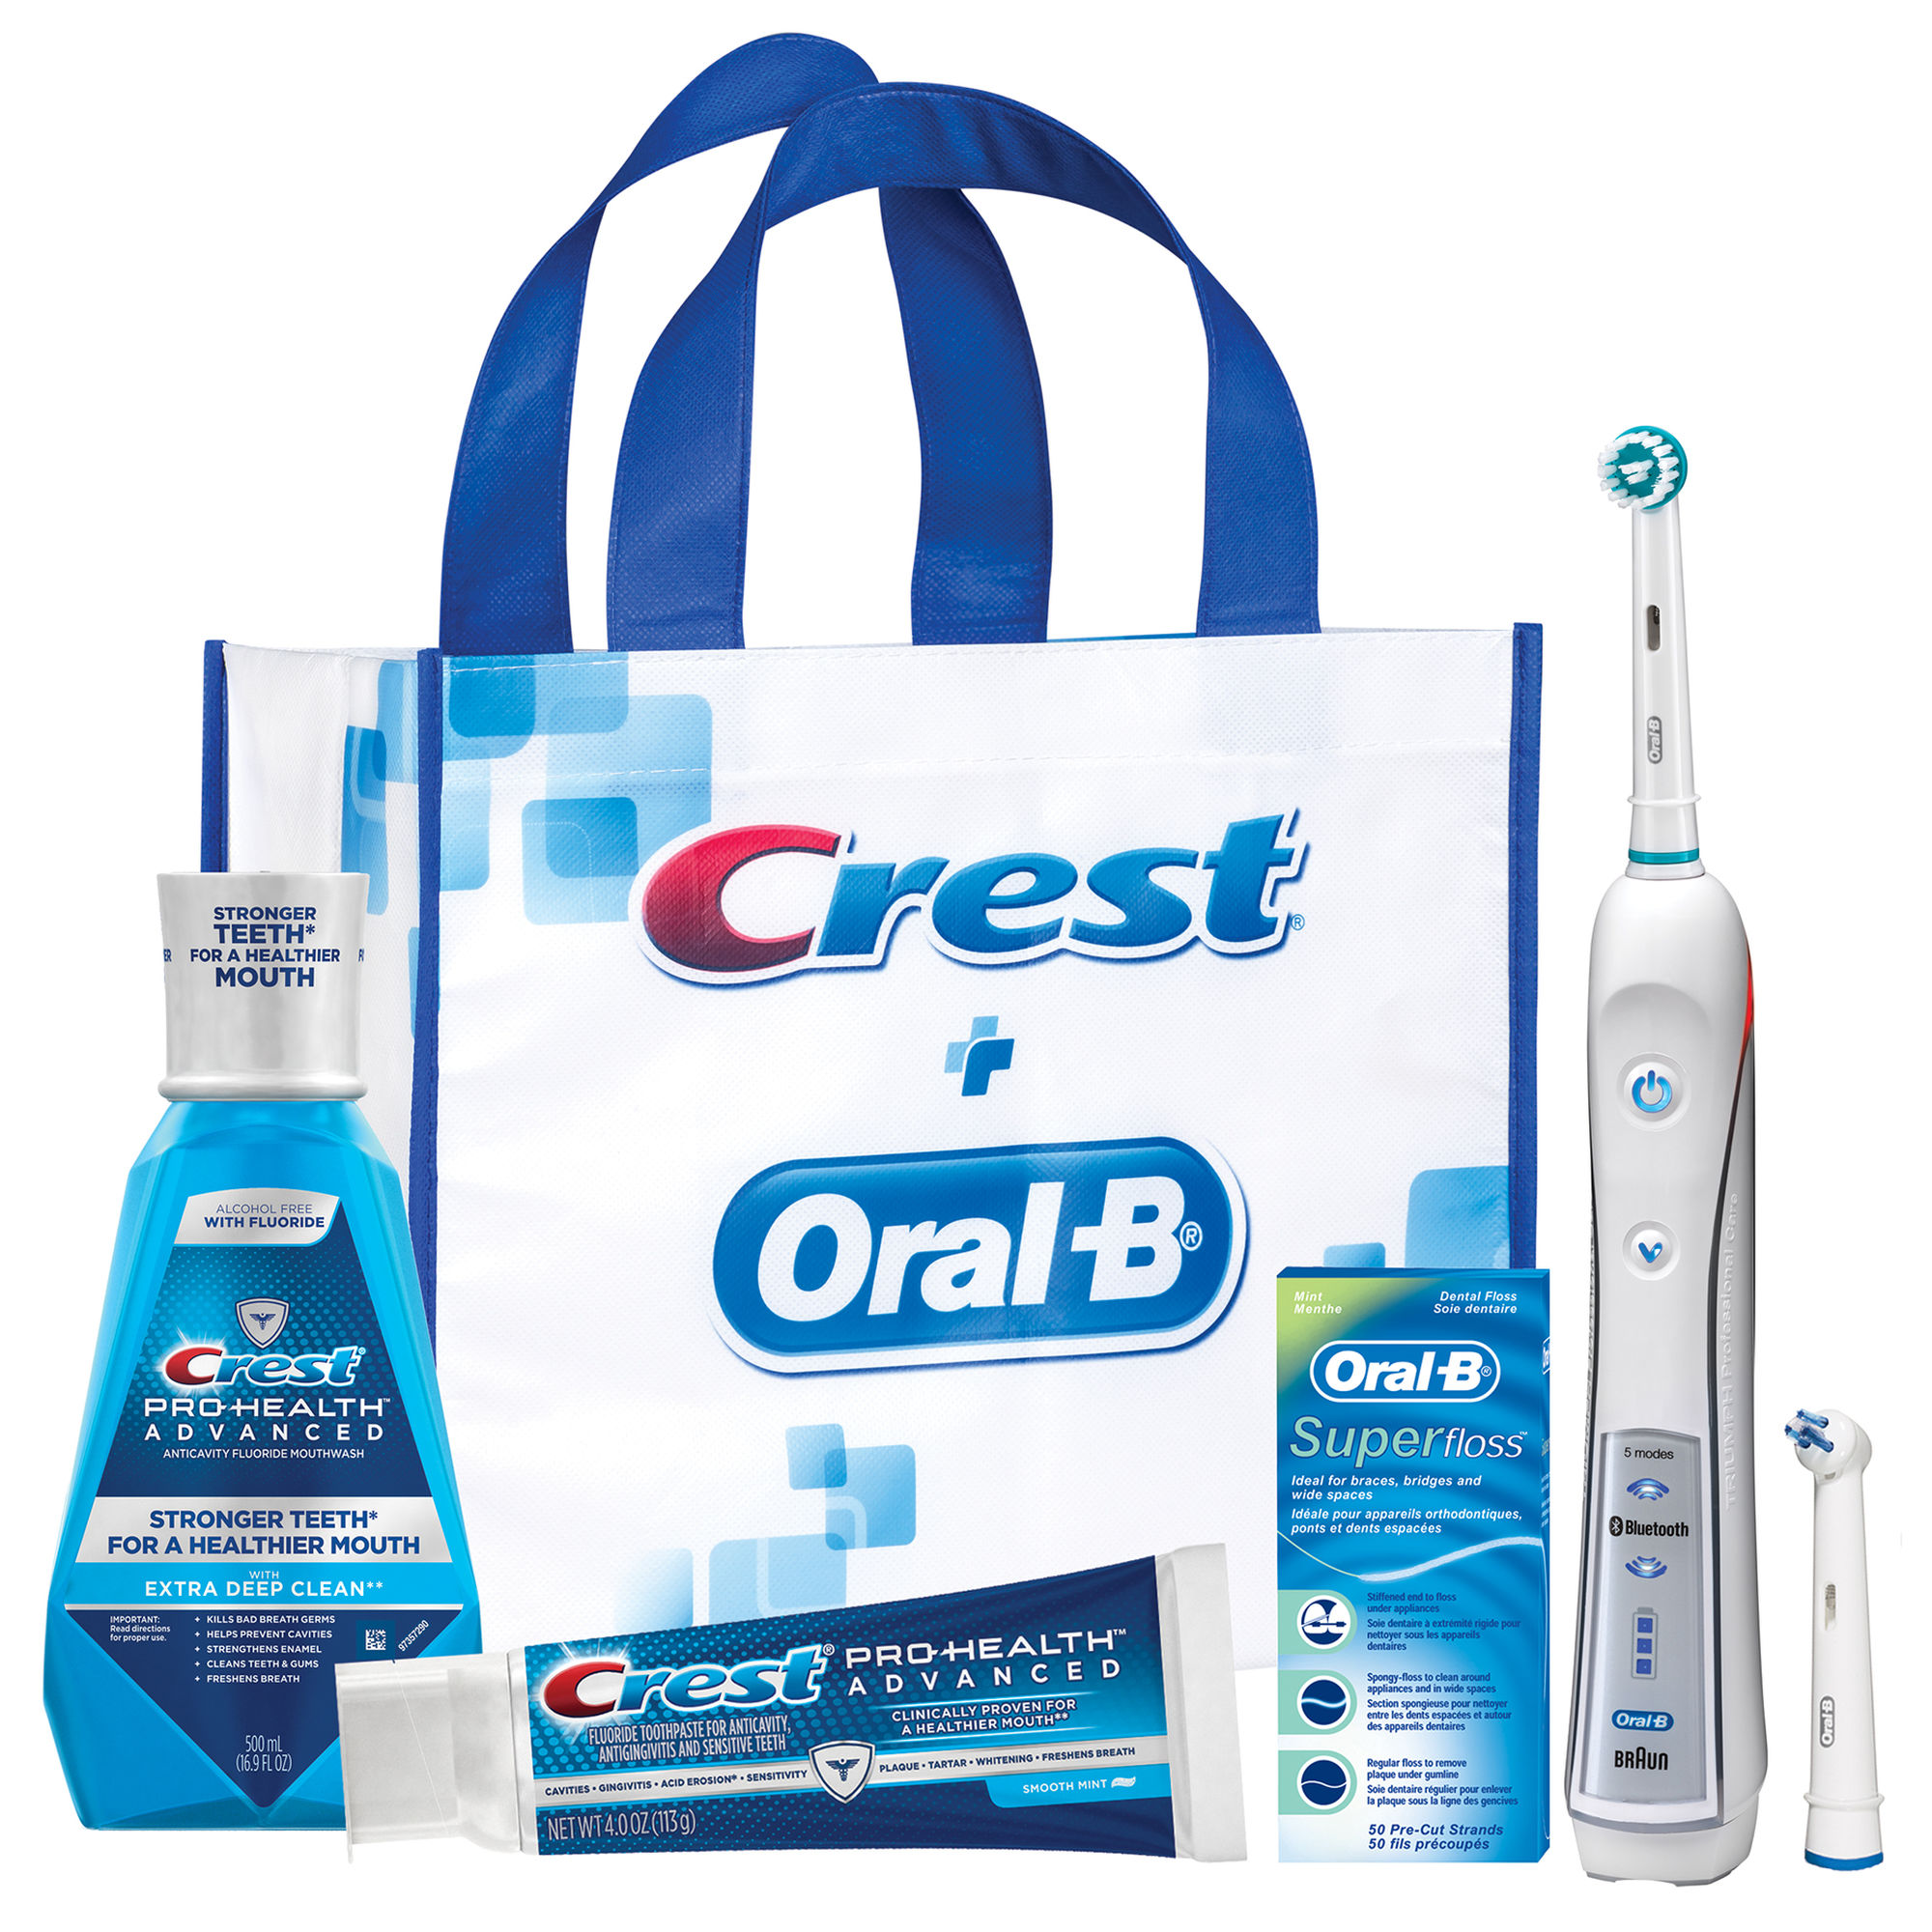 Crest and Oral B